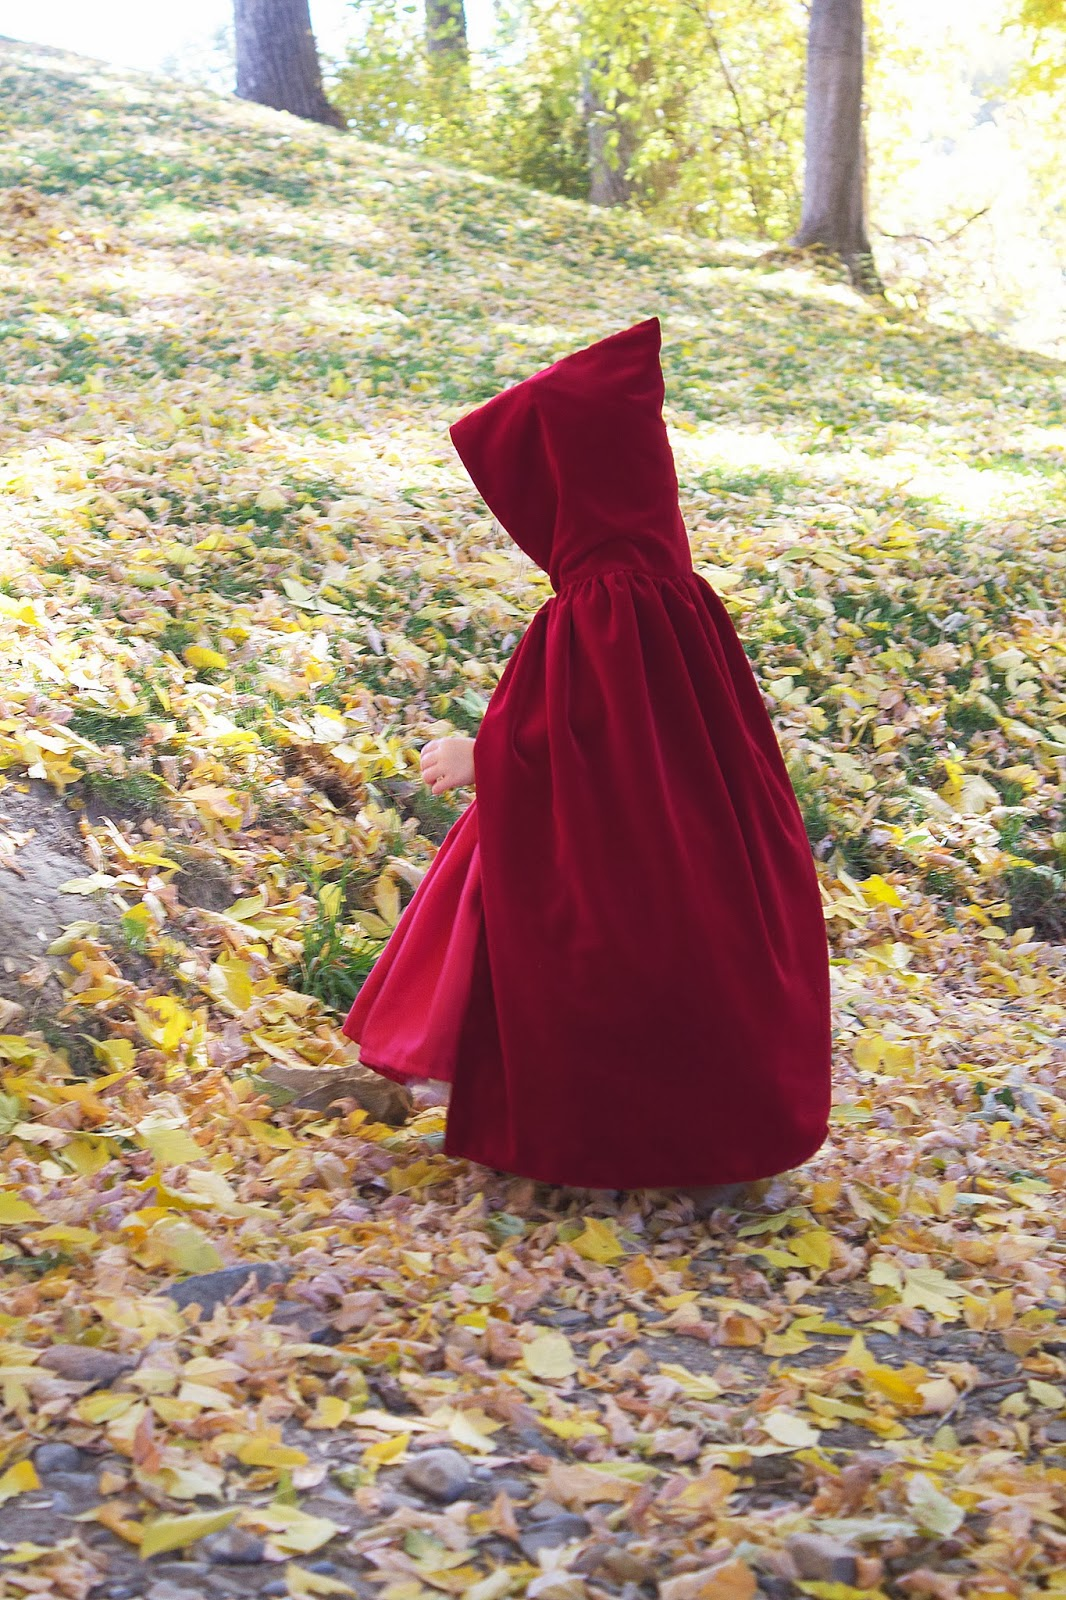 & do it yourself as: DIY: Little Red Riding Hood Costume/Cloak 2T-4T